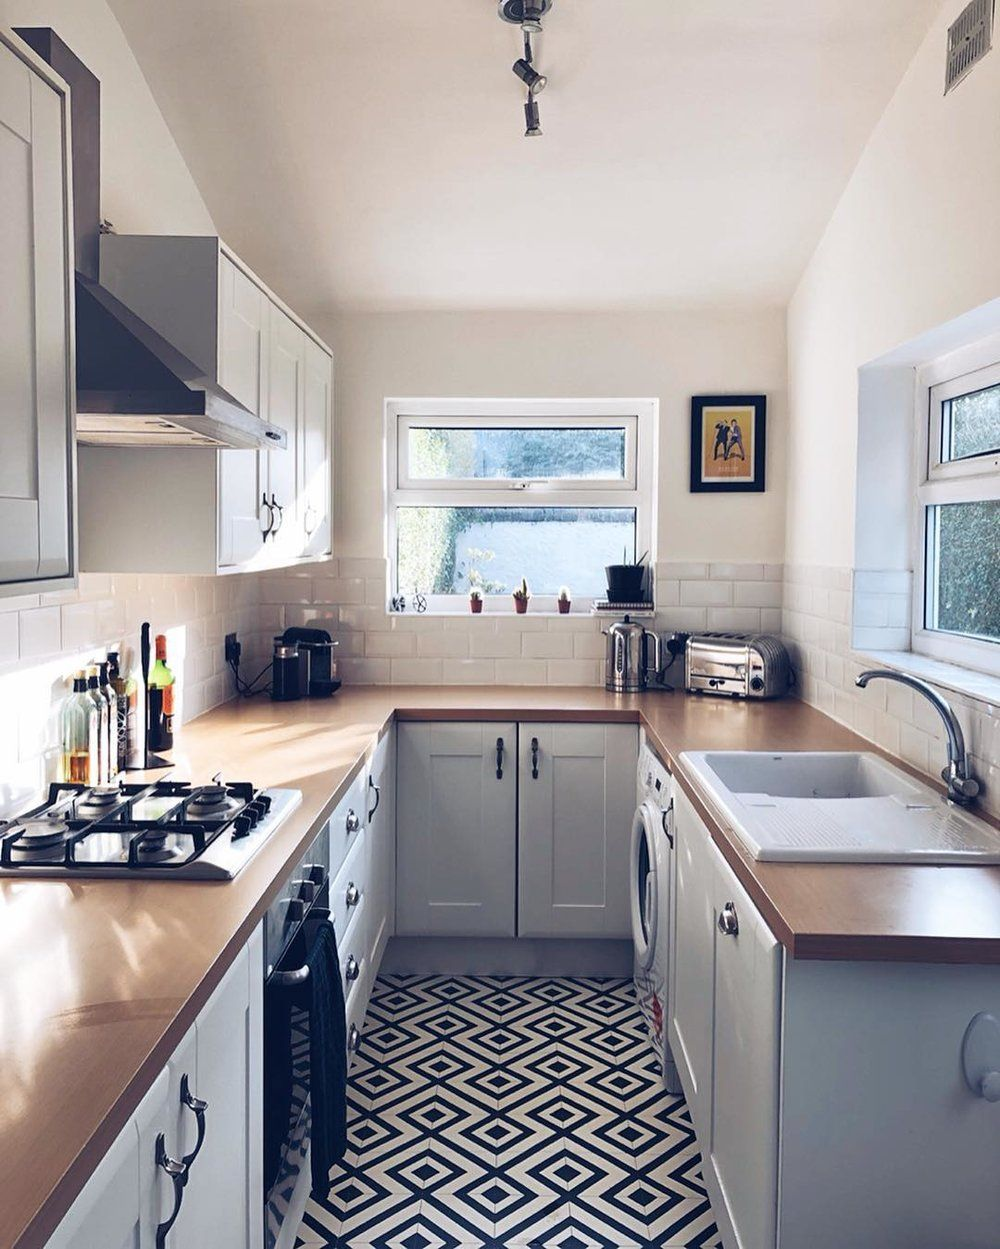 Photo of 11 Beautiful Galley Kitchen Ideas | Fifi McGee | Interiors + Renovation Blog